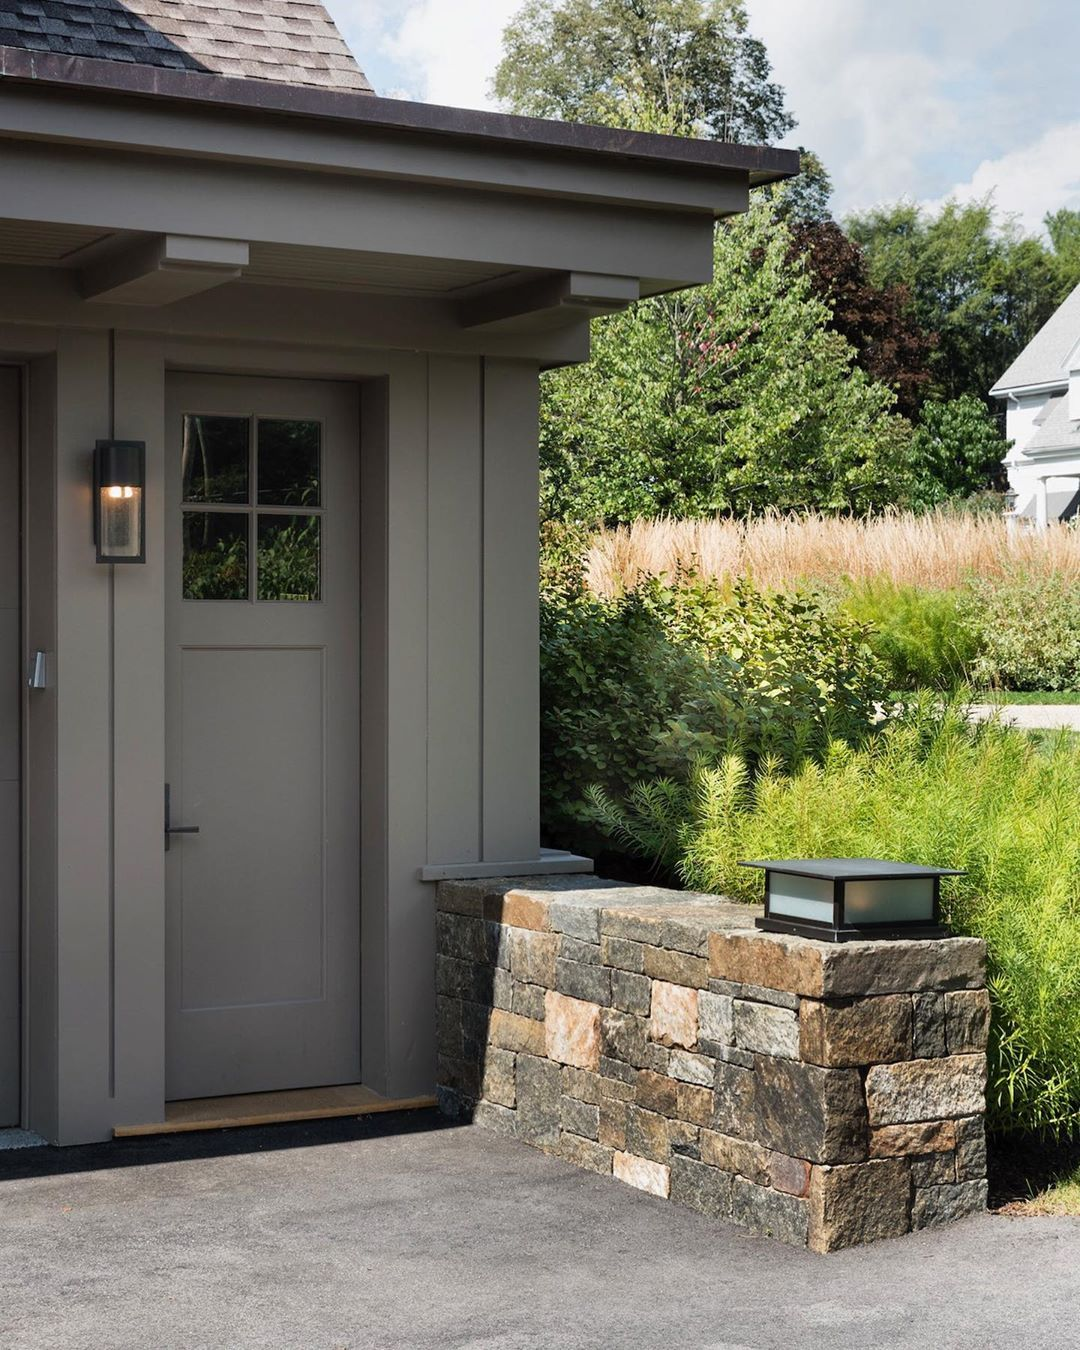 Mcld Llc On Instagram A Short Stone Retainingwall Topped By A Custom Lightfixture Creates An Attractive And Inviting In 2020 Inviting Outdoor Decor Retaining Wall